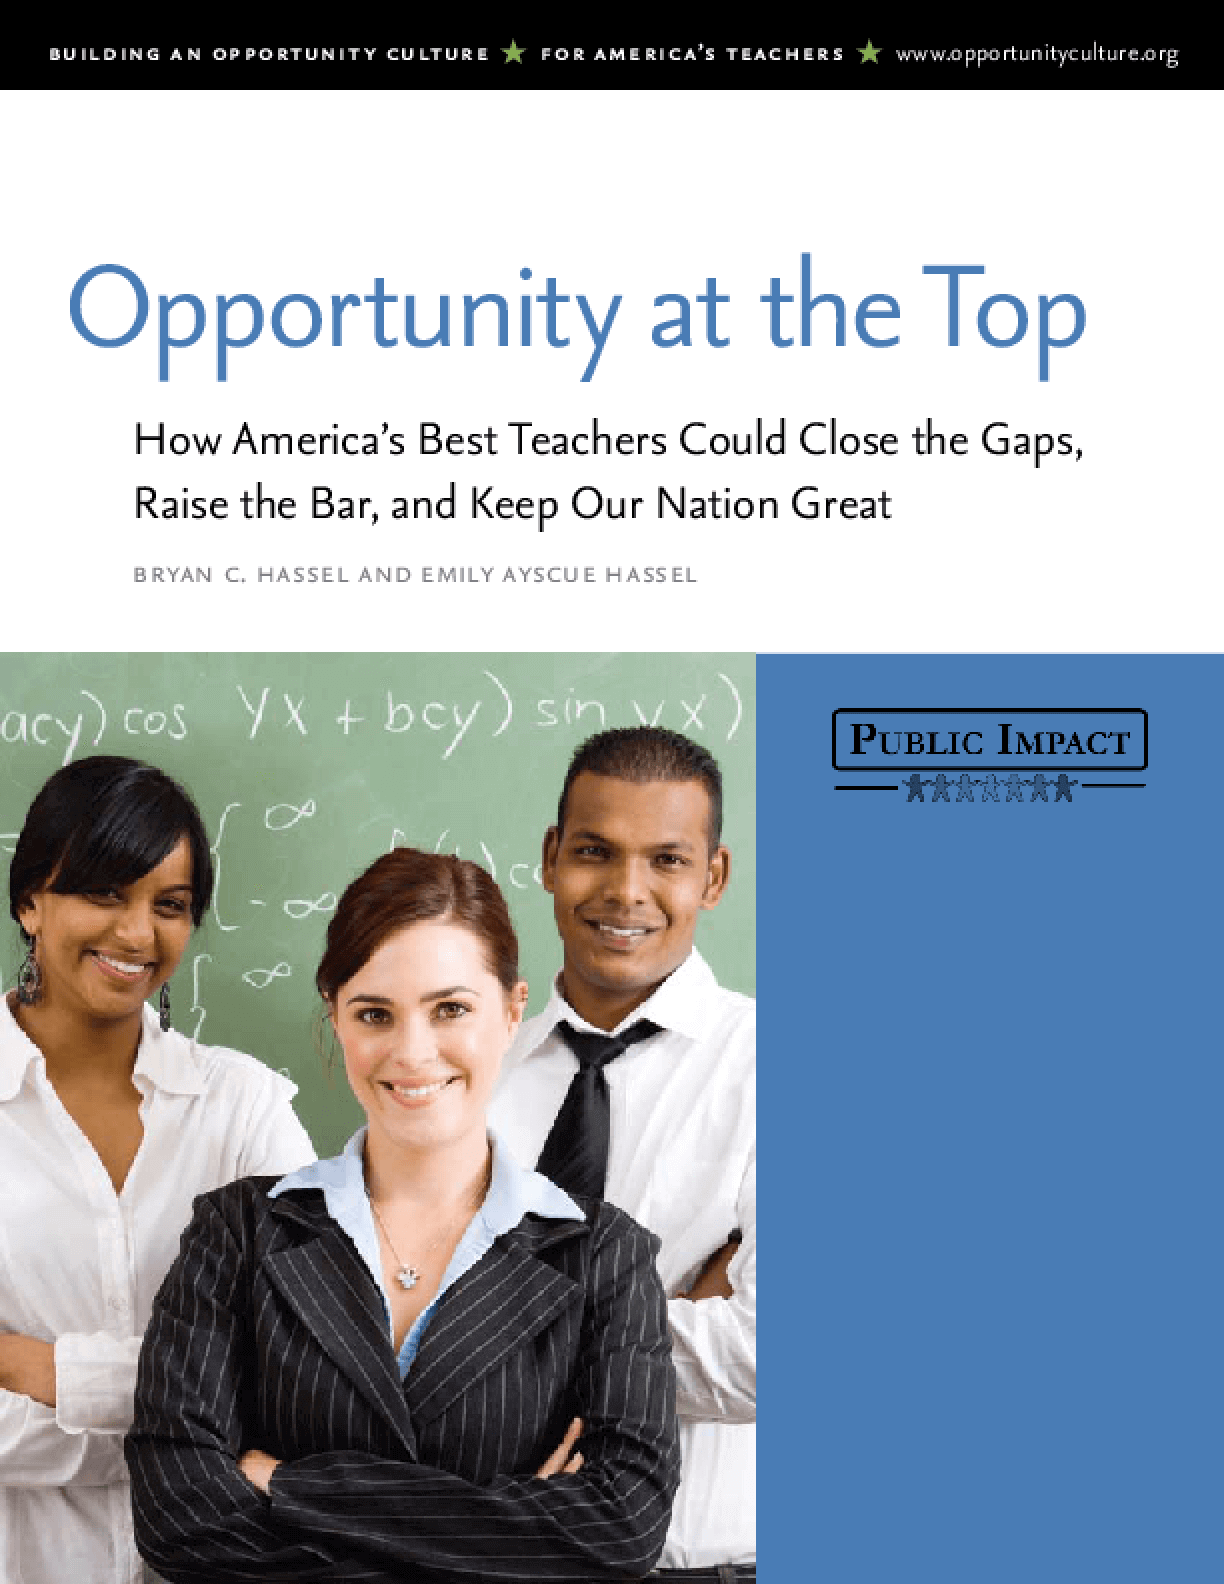 Opportunity at the Top: How America's Best Teachers Could Close the Gaps, Raise the Bar, and Keep Our Nation Great